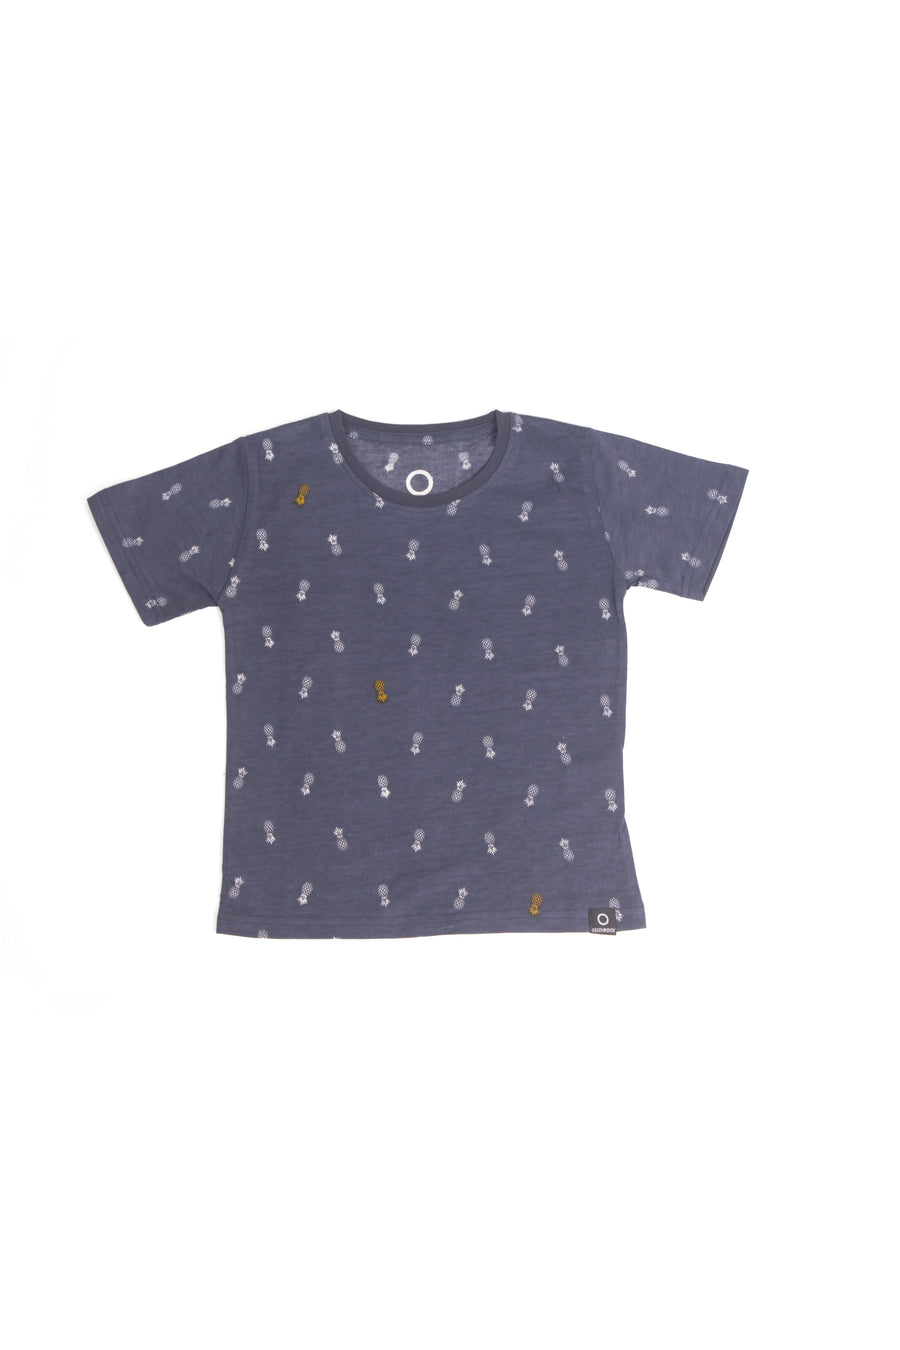 T-Shirt Kids Pineapple Navy - Greenrock Indonesia